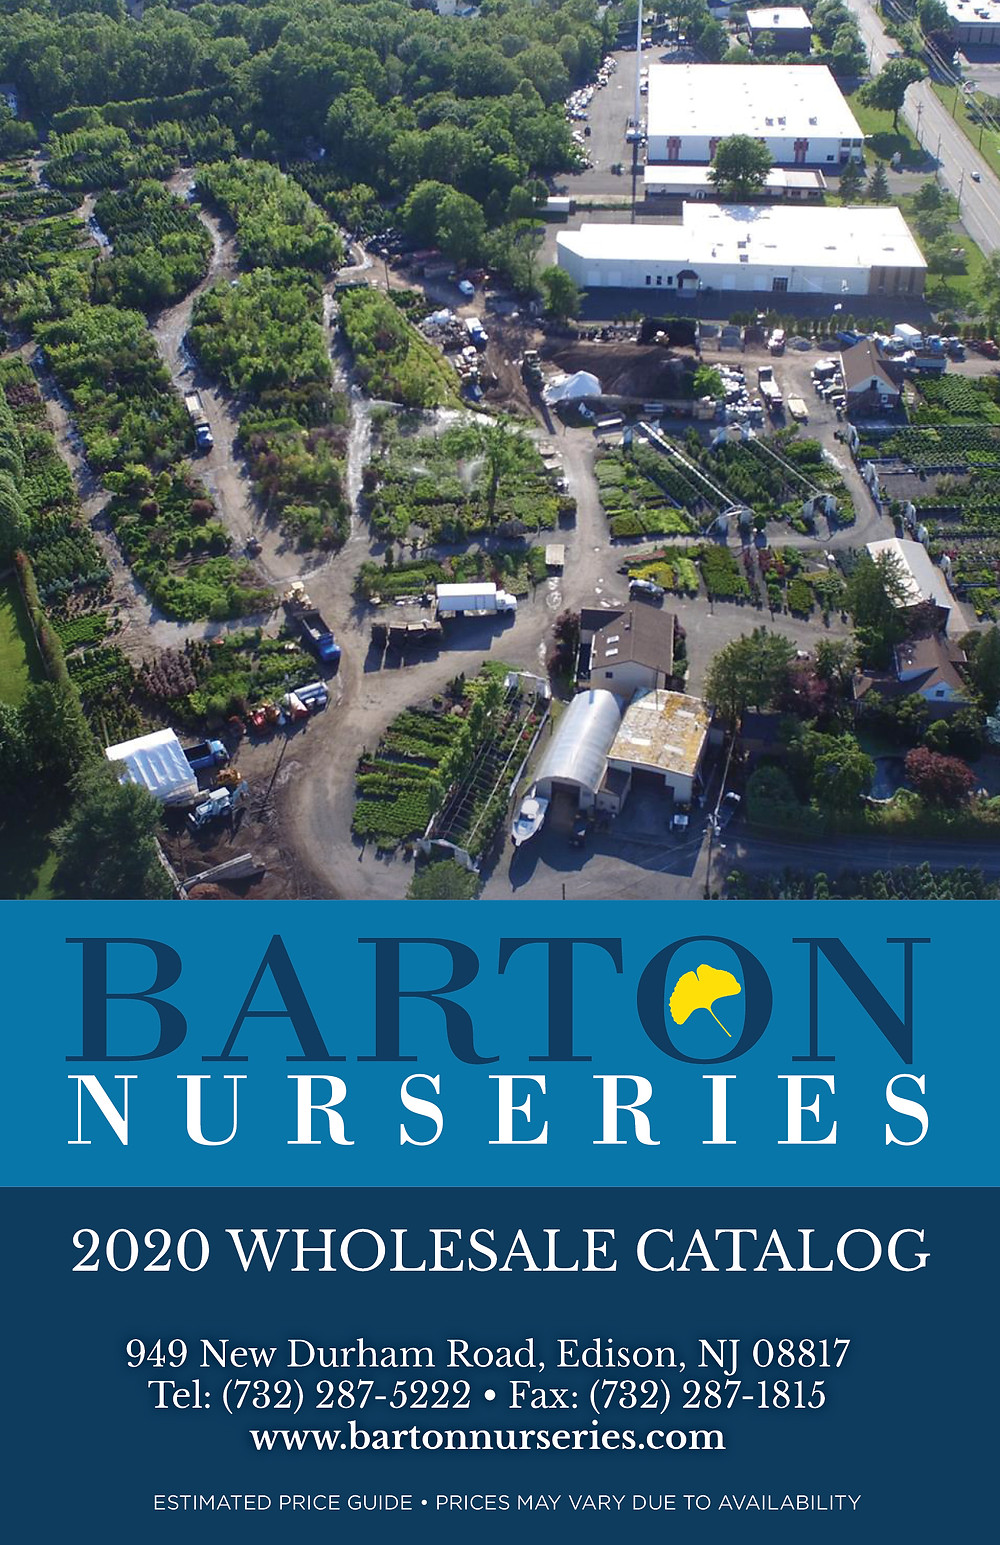 Denver Catalog Designer for Tree Nursery - Barton Nurseries in NJ